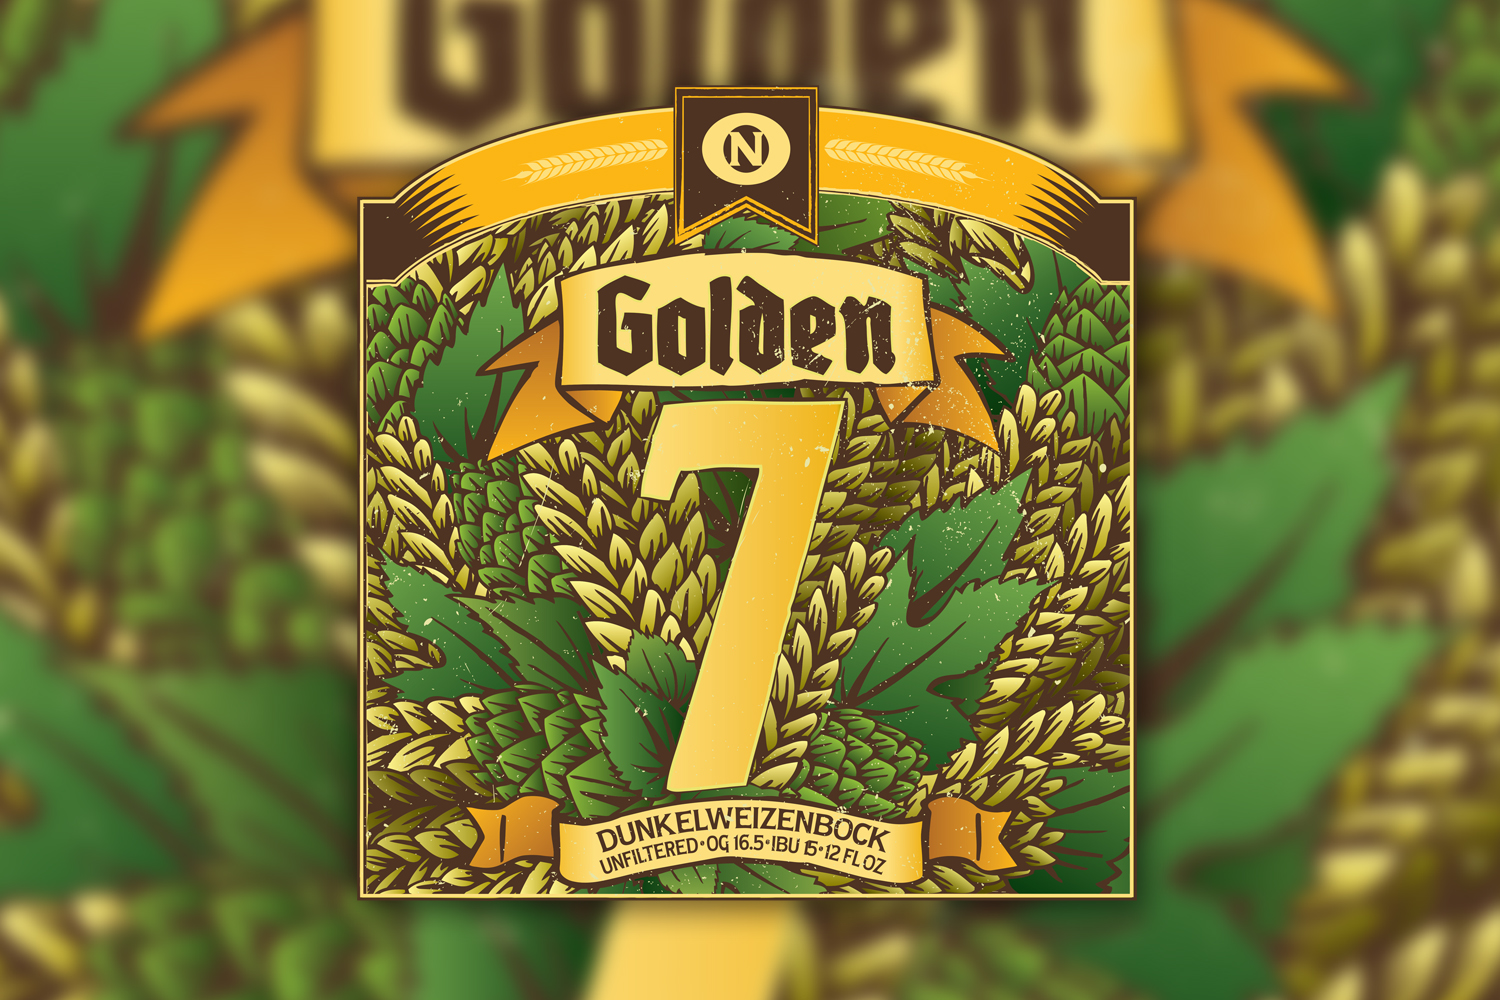 Golden 7 Beer Label